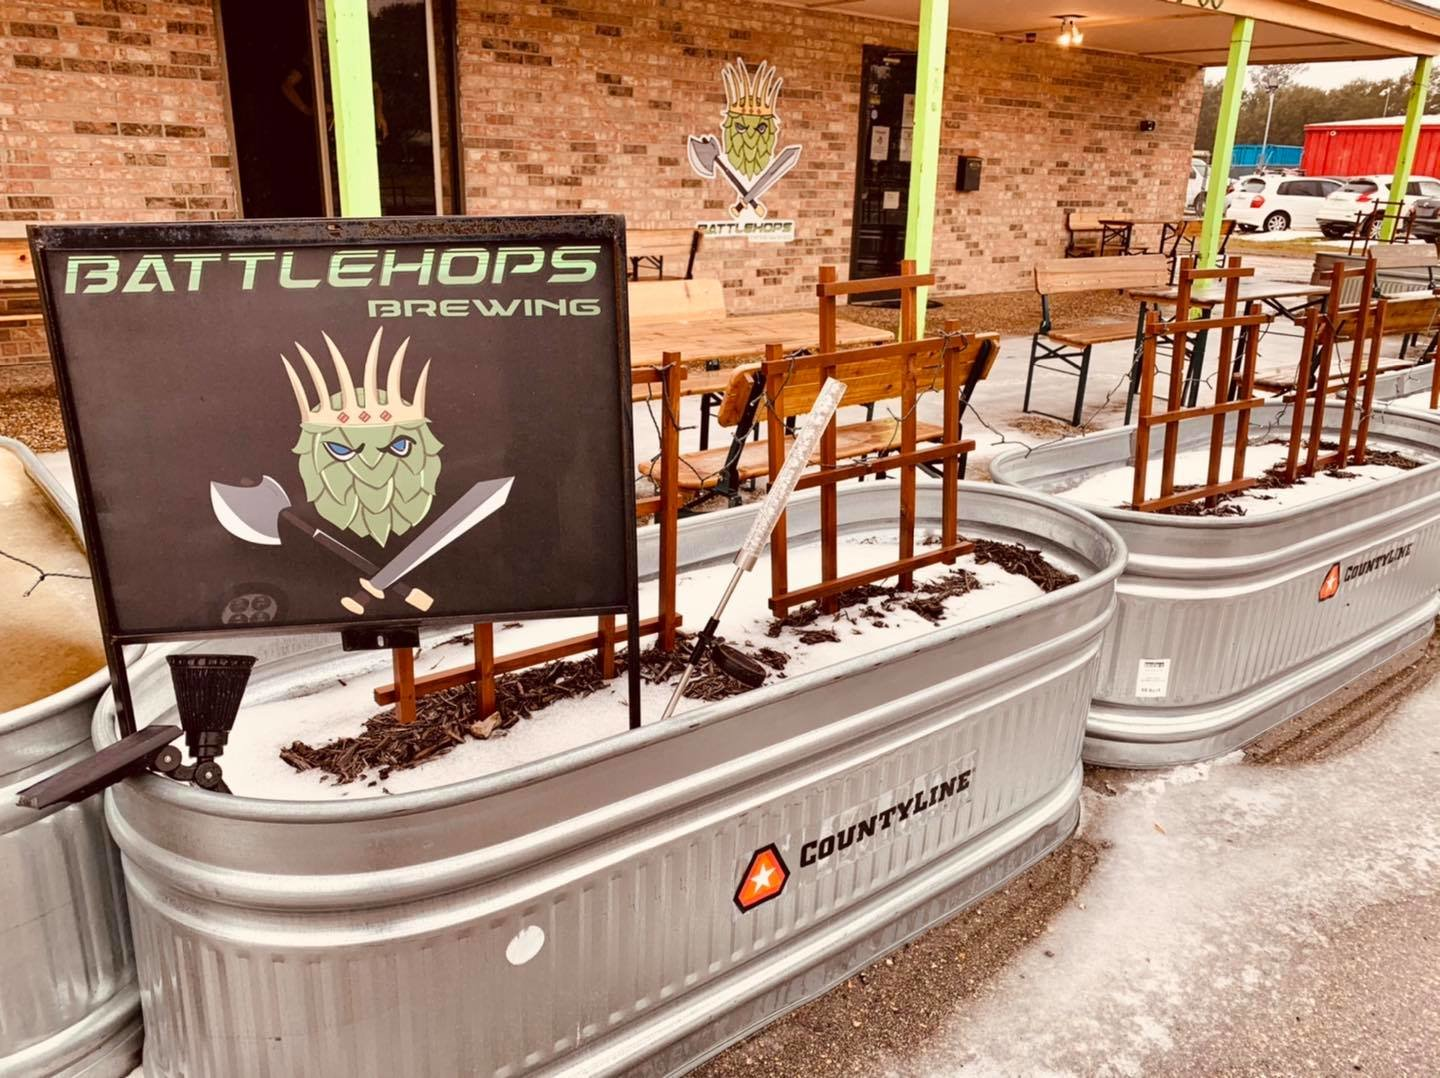 Battlehops Brewery was able to keep water running and provided water to the public as it became apparent many residents had lost water service due to burst pipes.